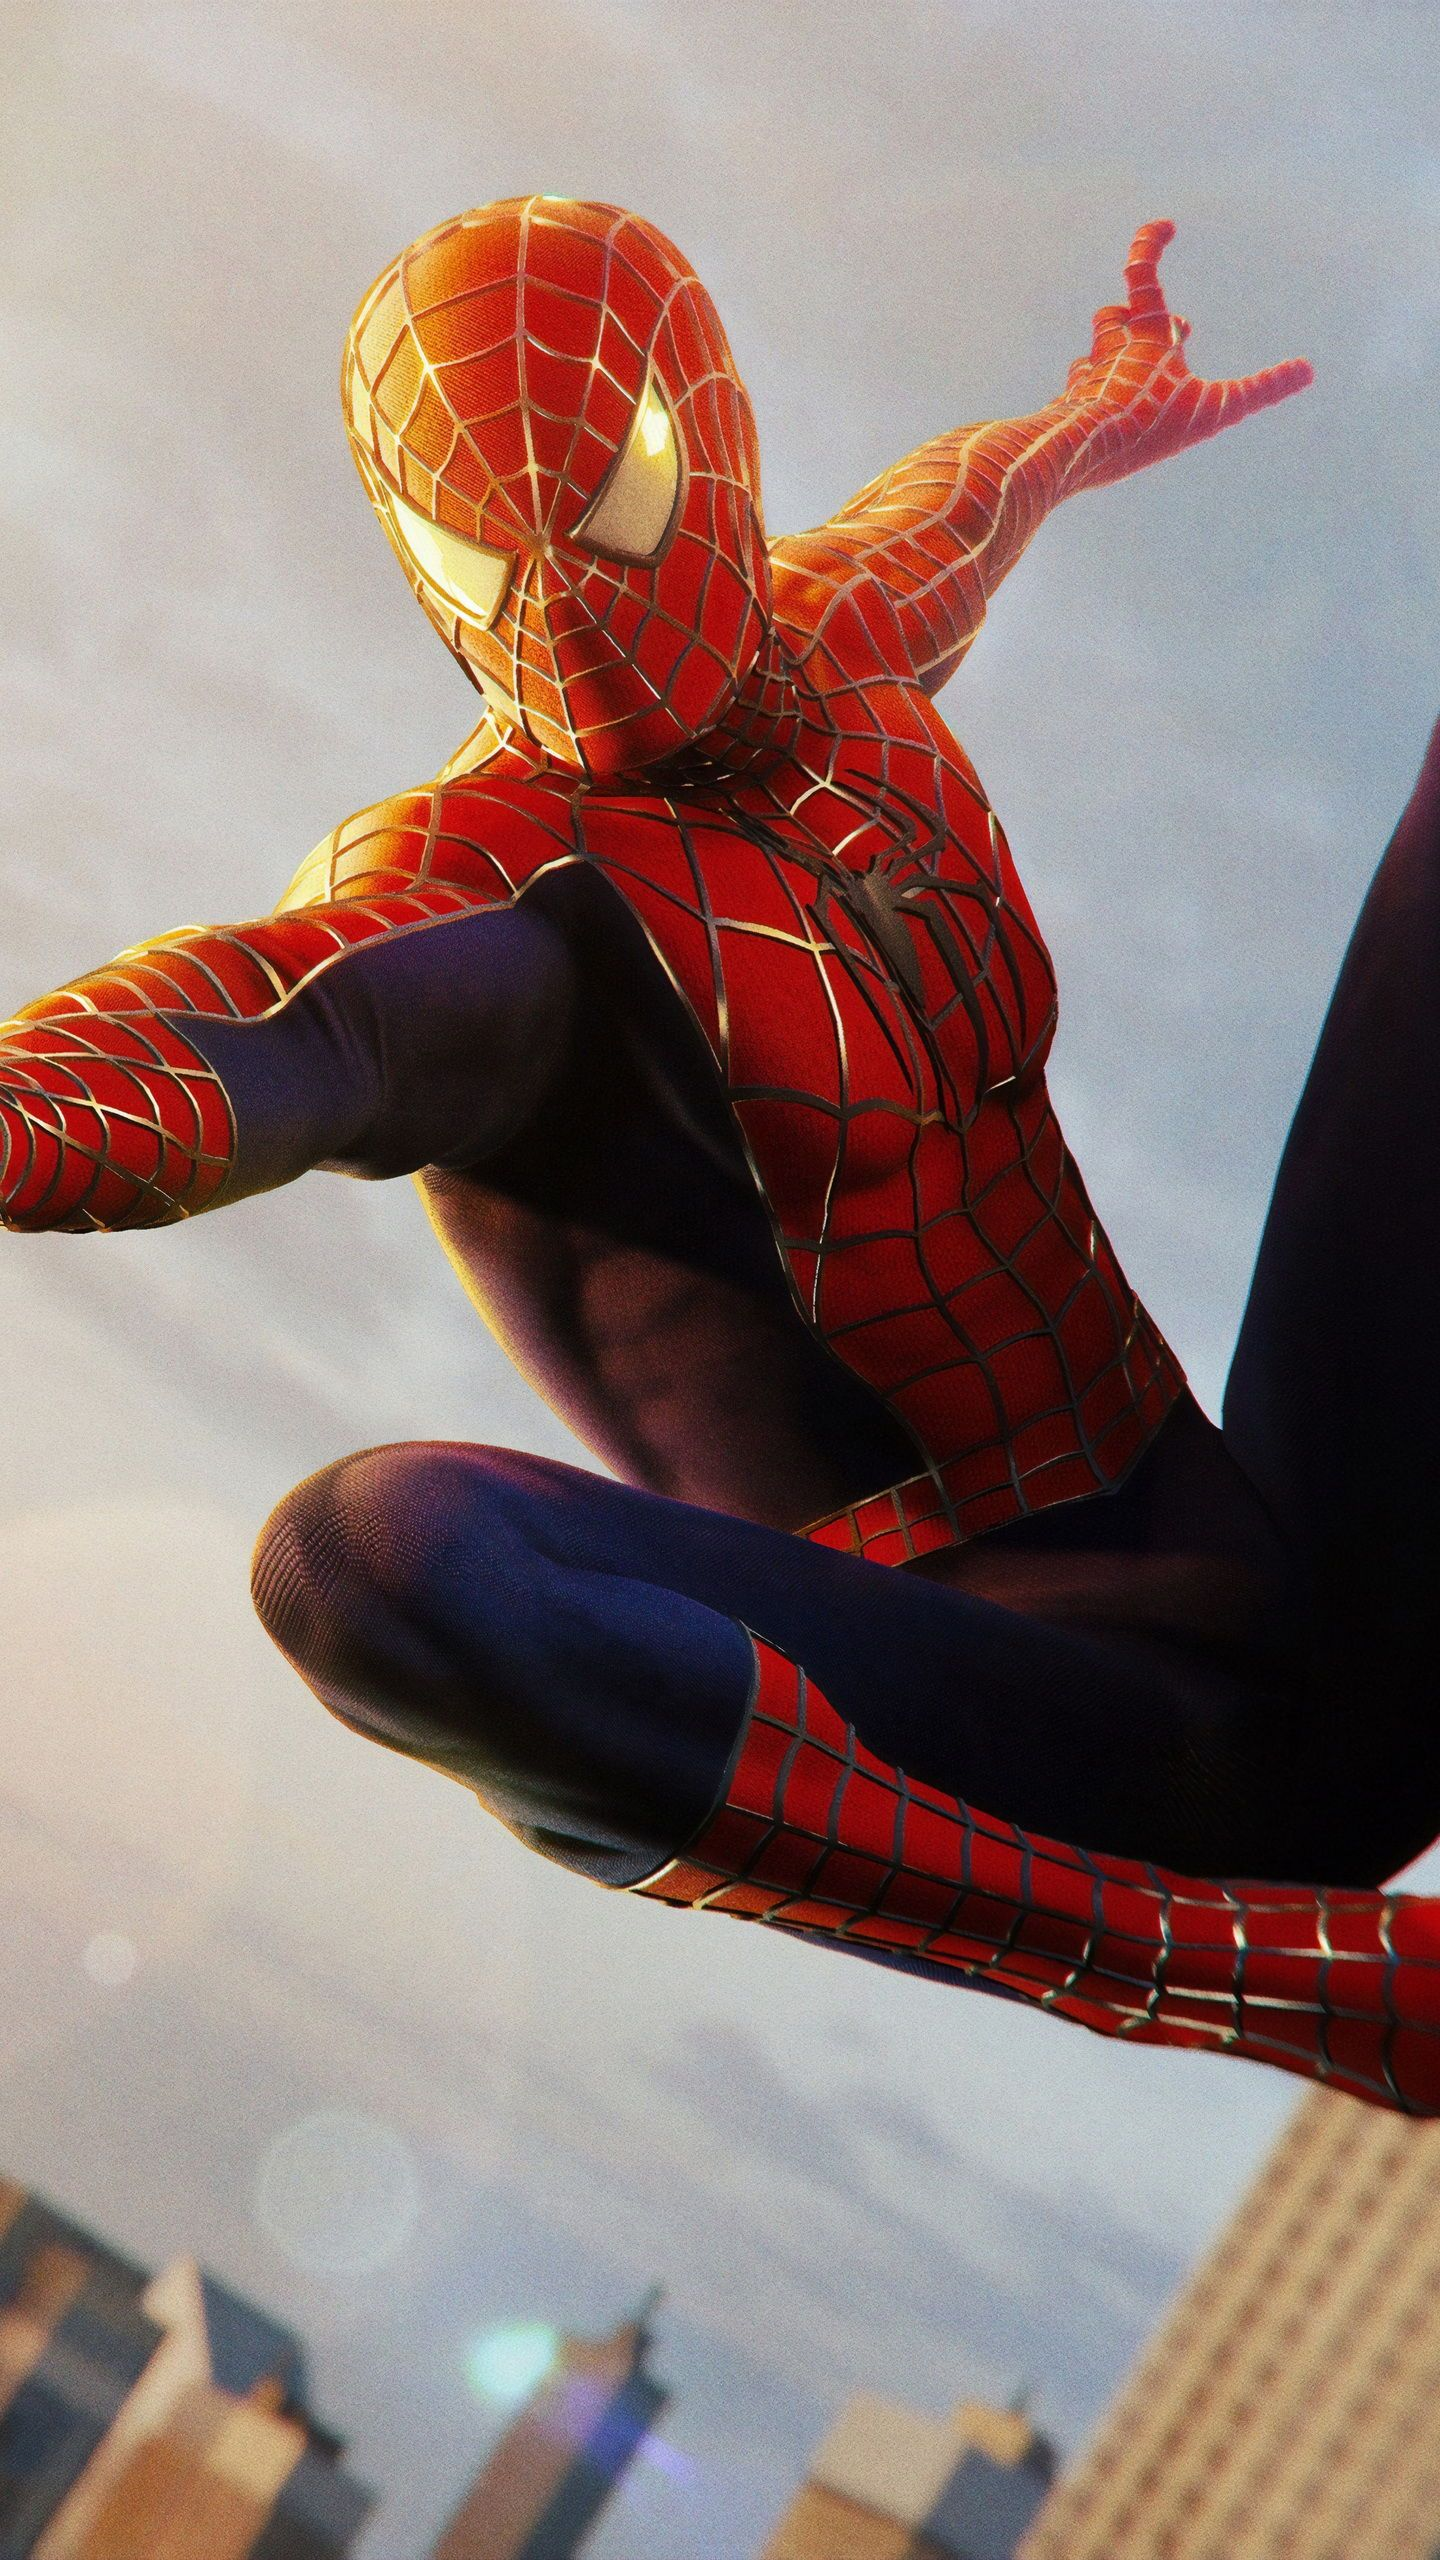 iPhone X 4k Wallpaper Awesome Spiderman blue Hero